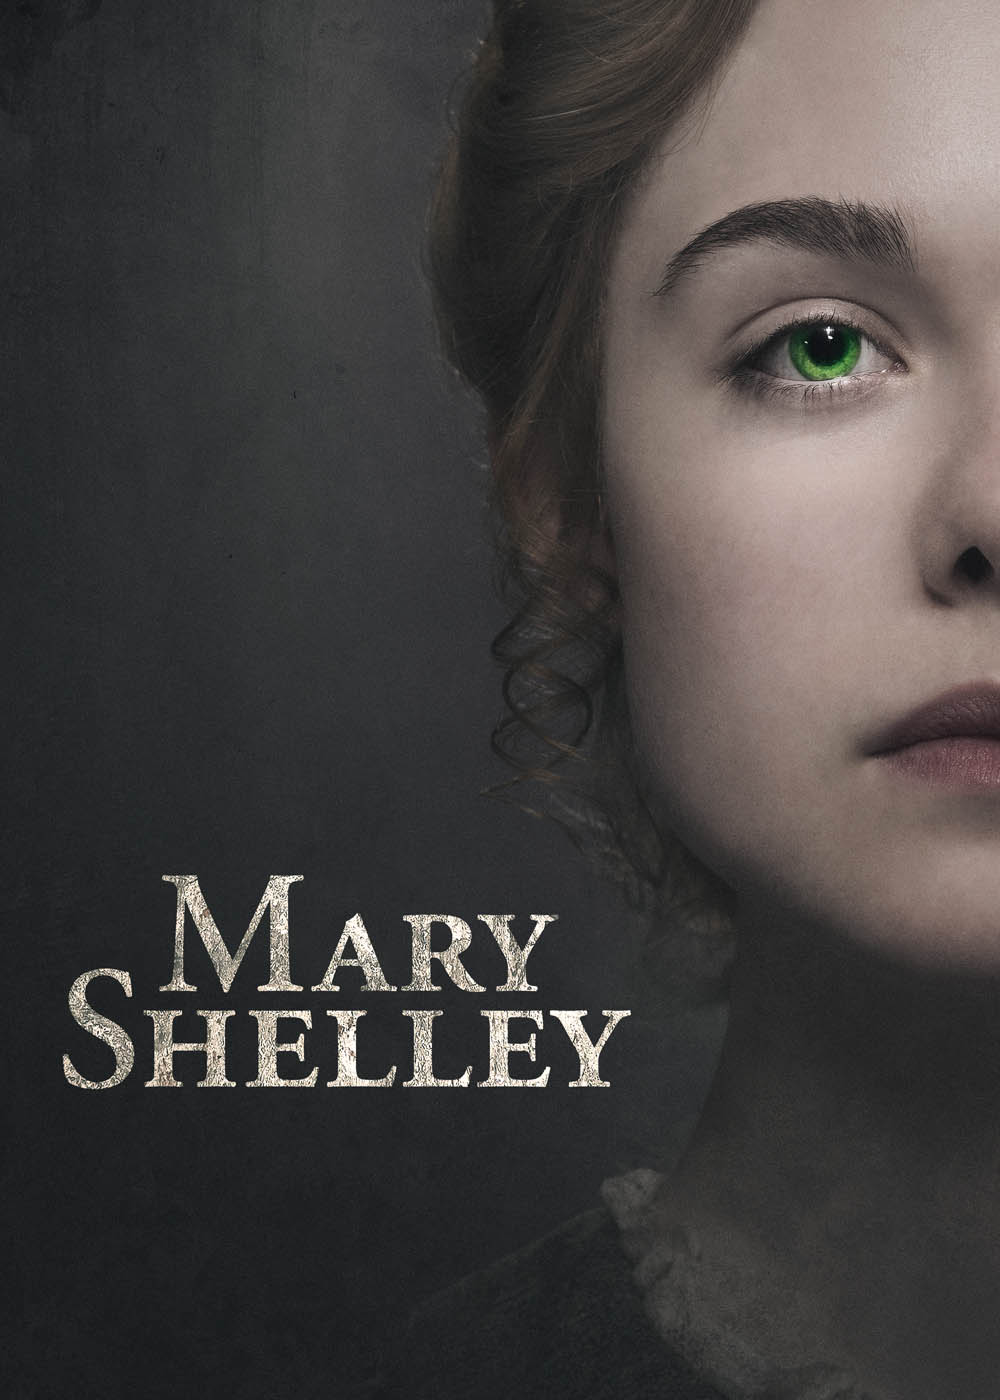 maryshelley_poster.jpg